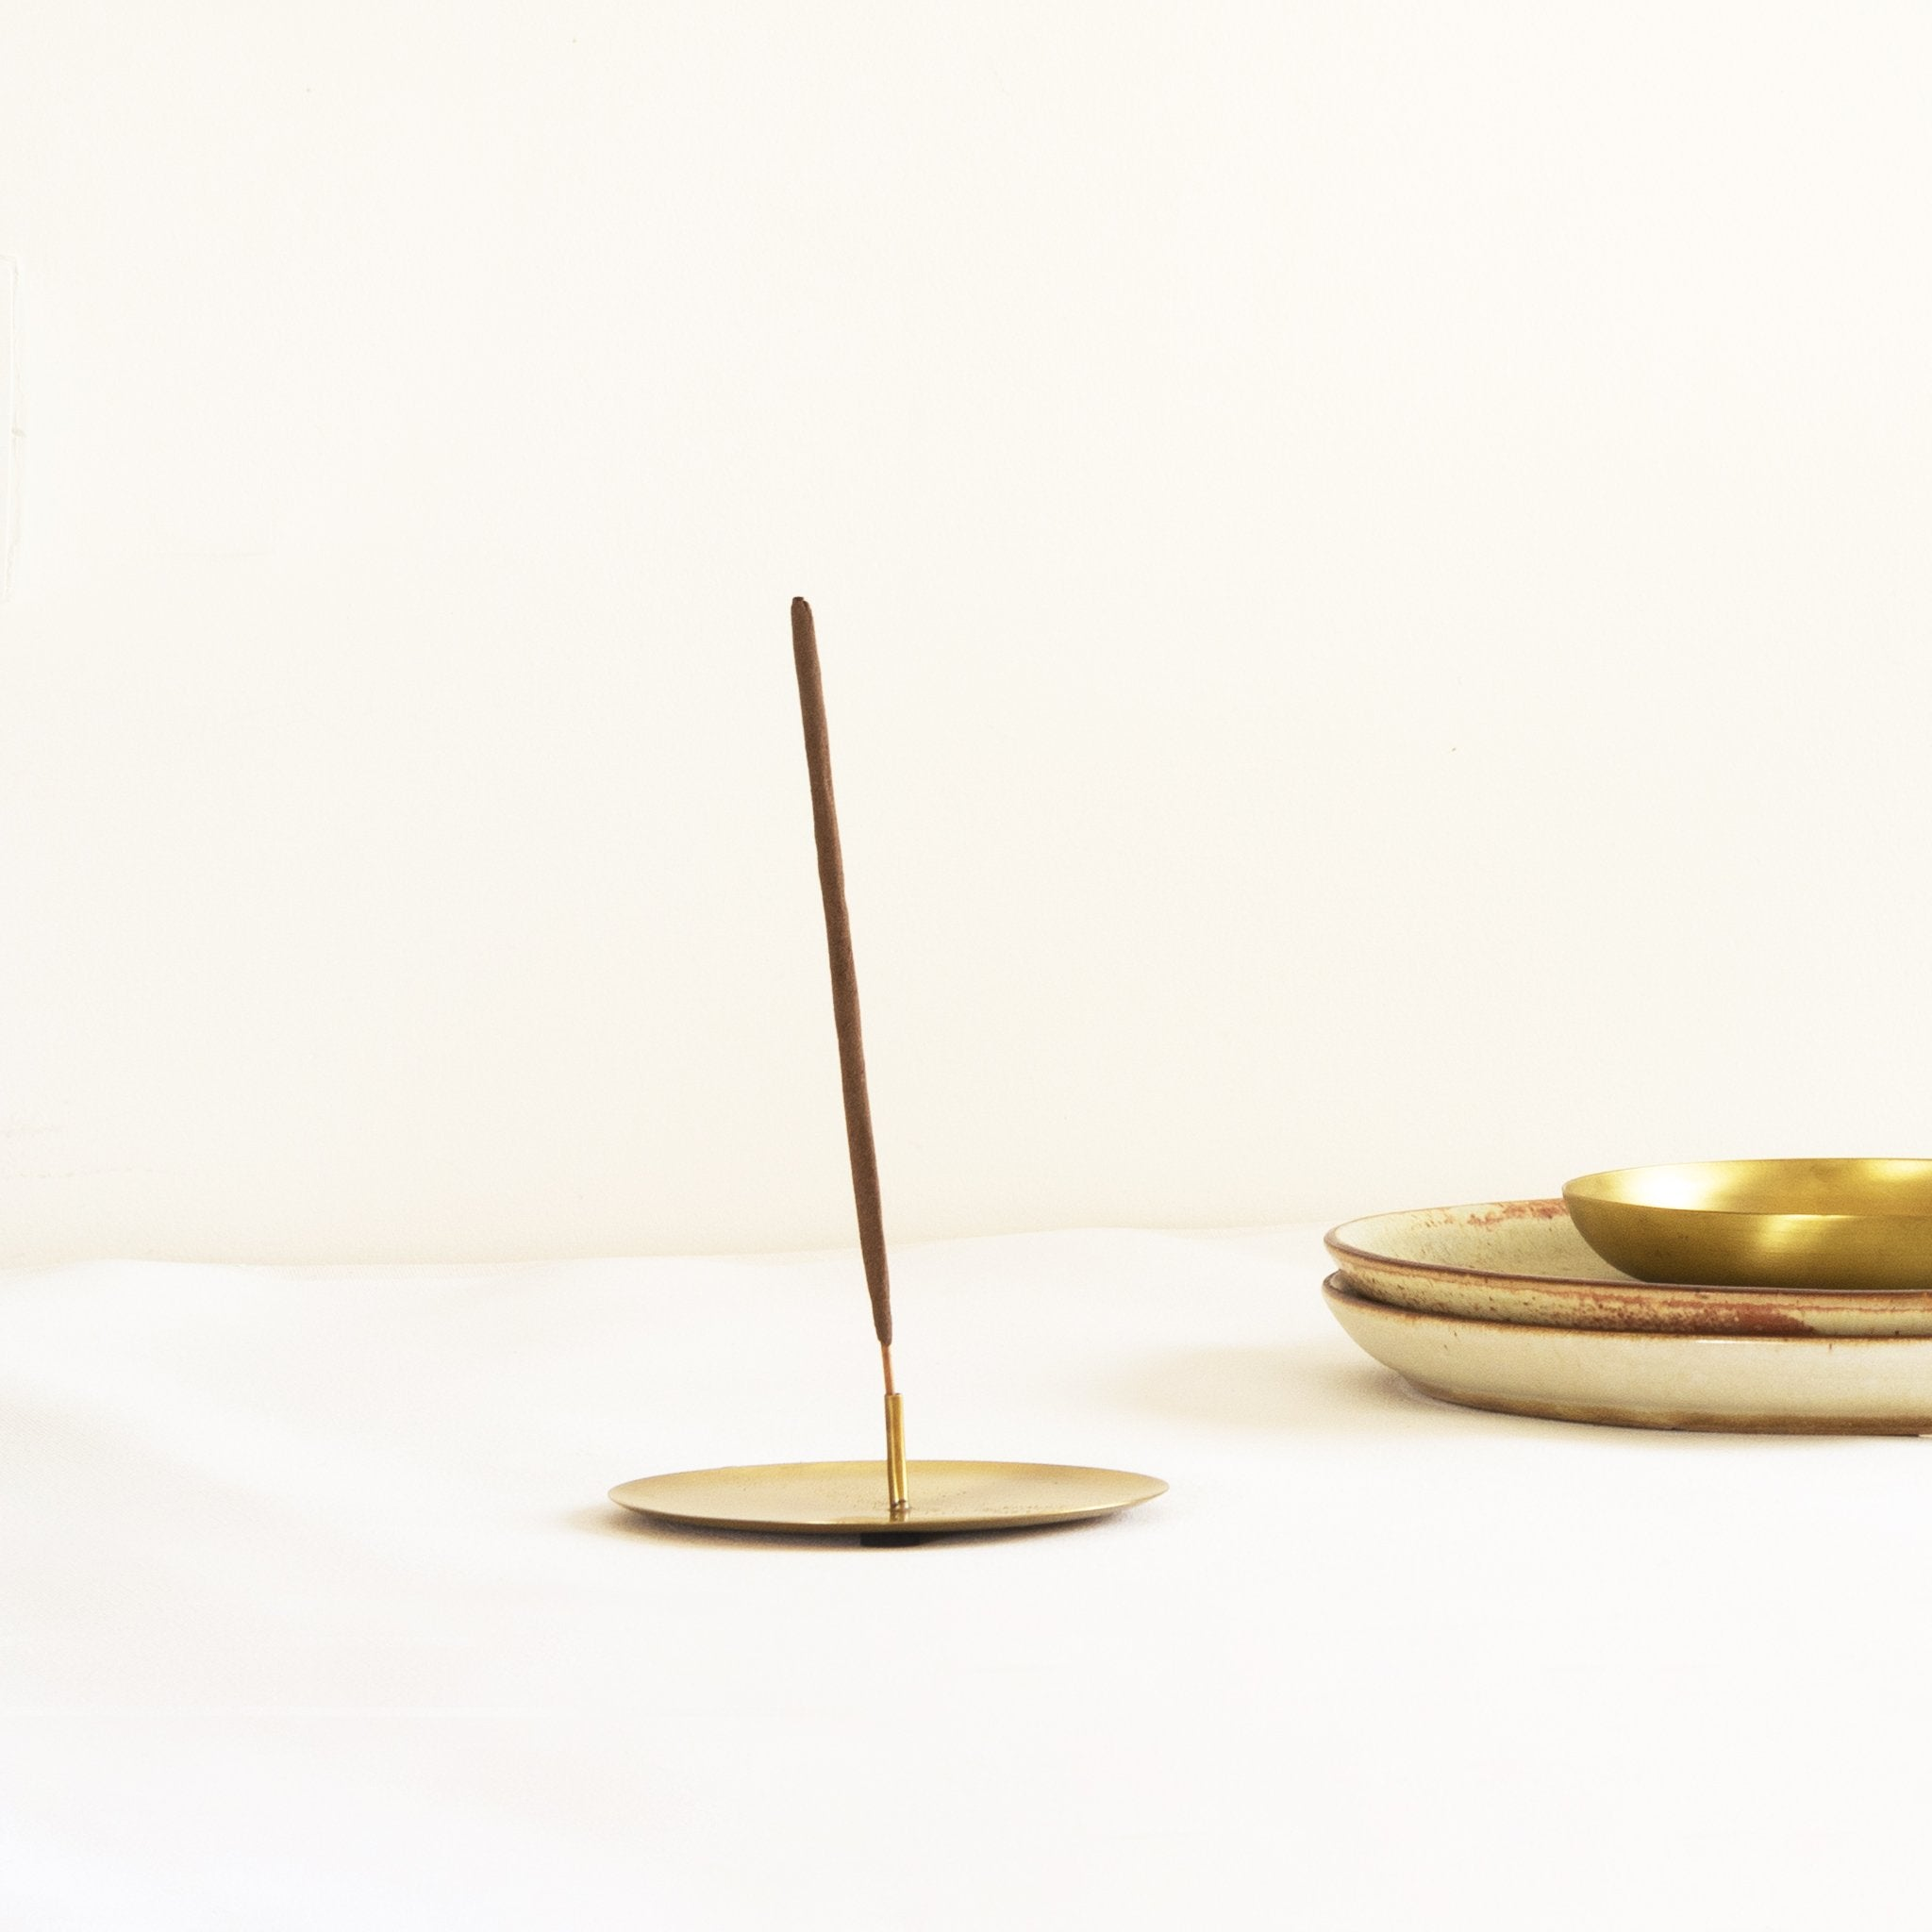 Brass Incense stick holder with two incense stick with ceramic plates in the background. Part of heirloom collection by Fleck India